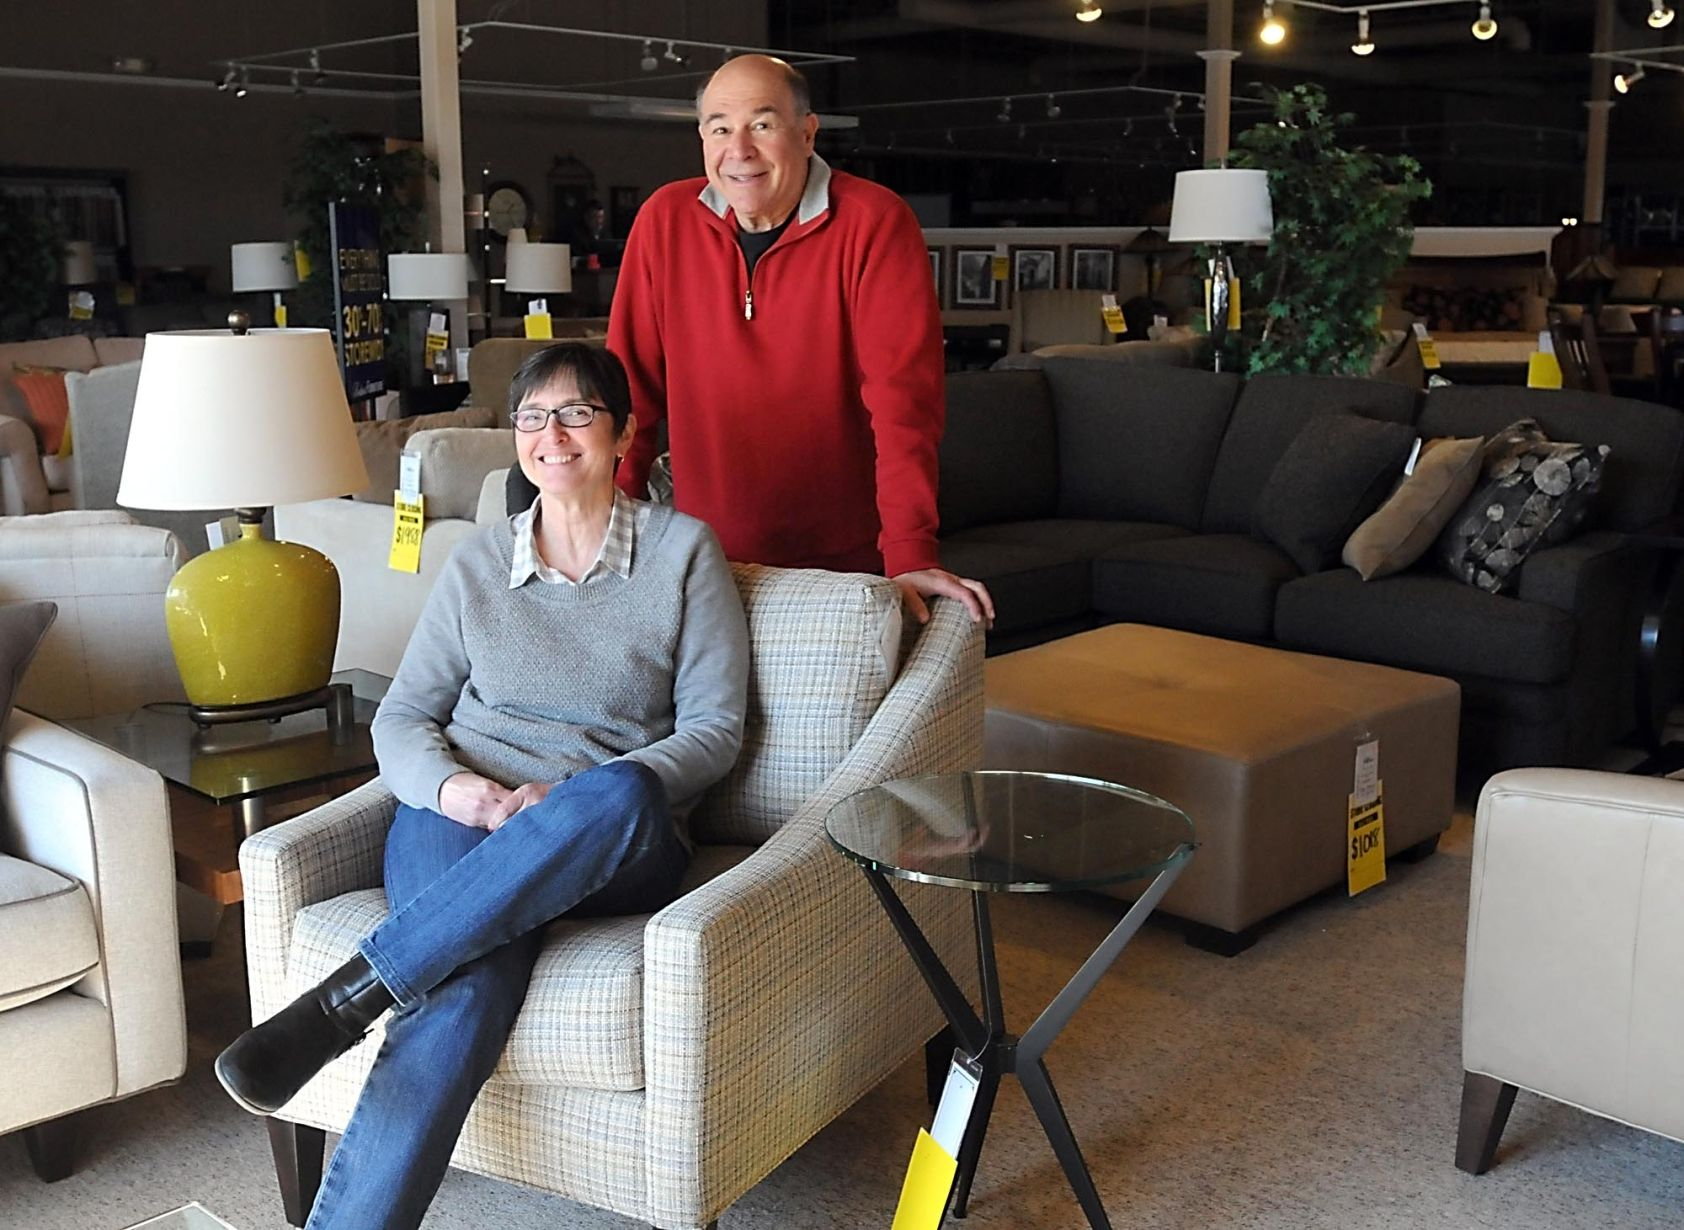 Bedpost Furniture Folding Into Other Business